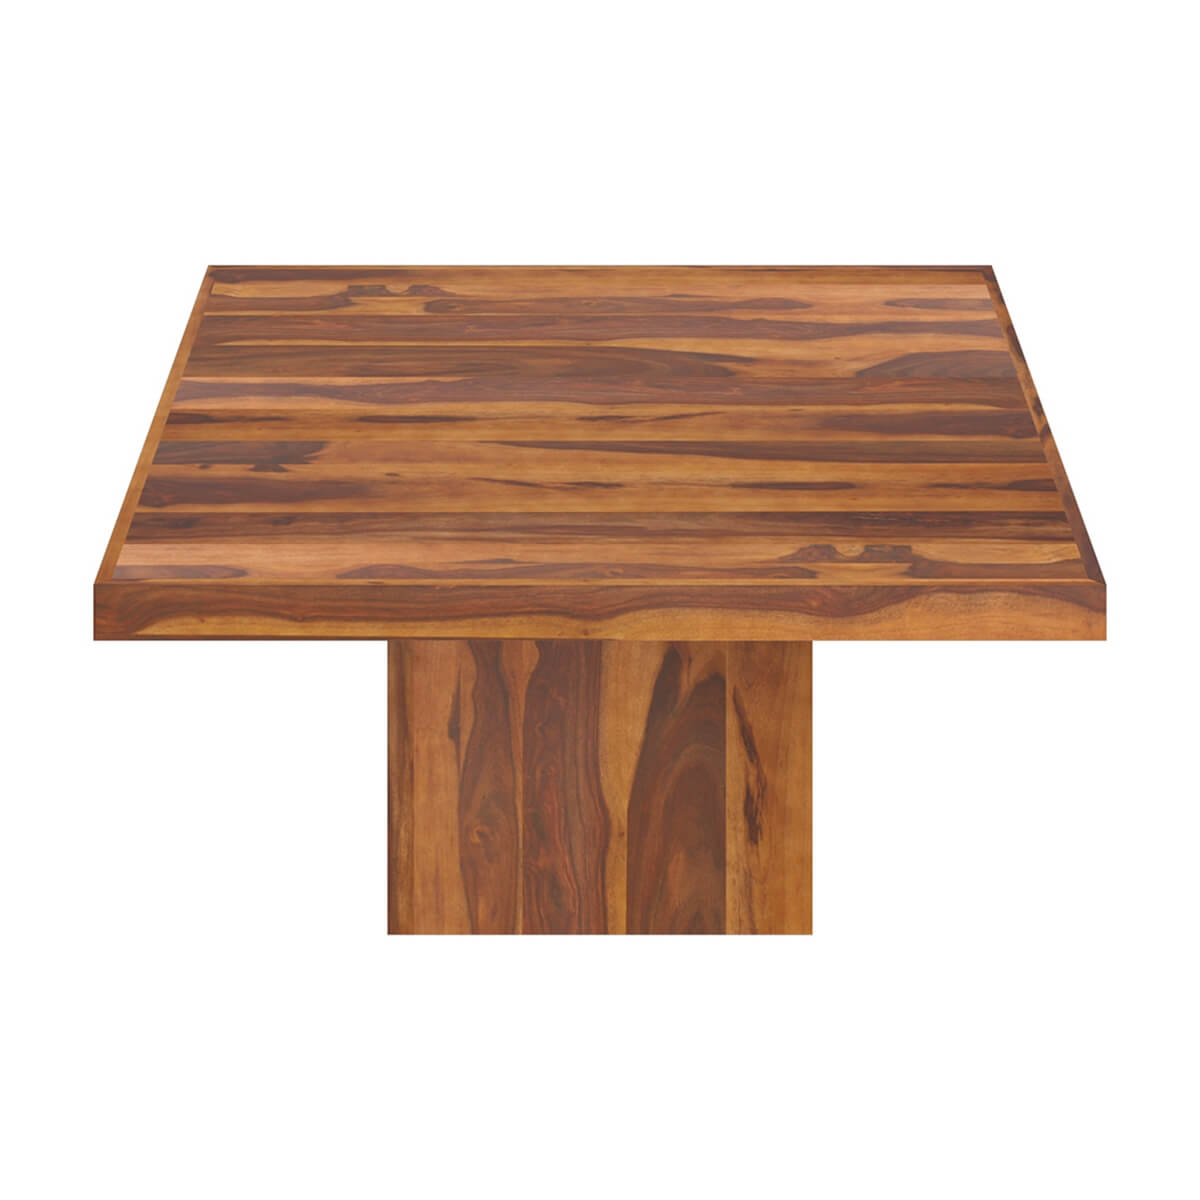 Square Wood Dining Tables wood modern rustic block pedestal square dining table for 8